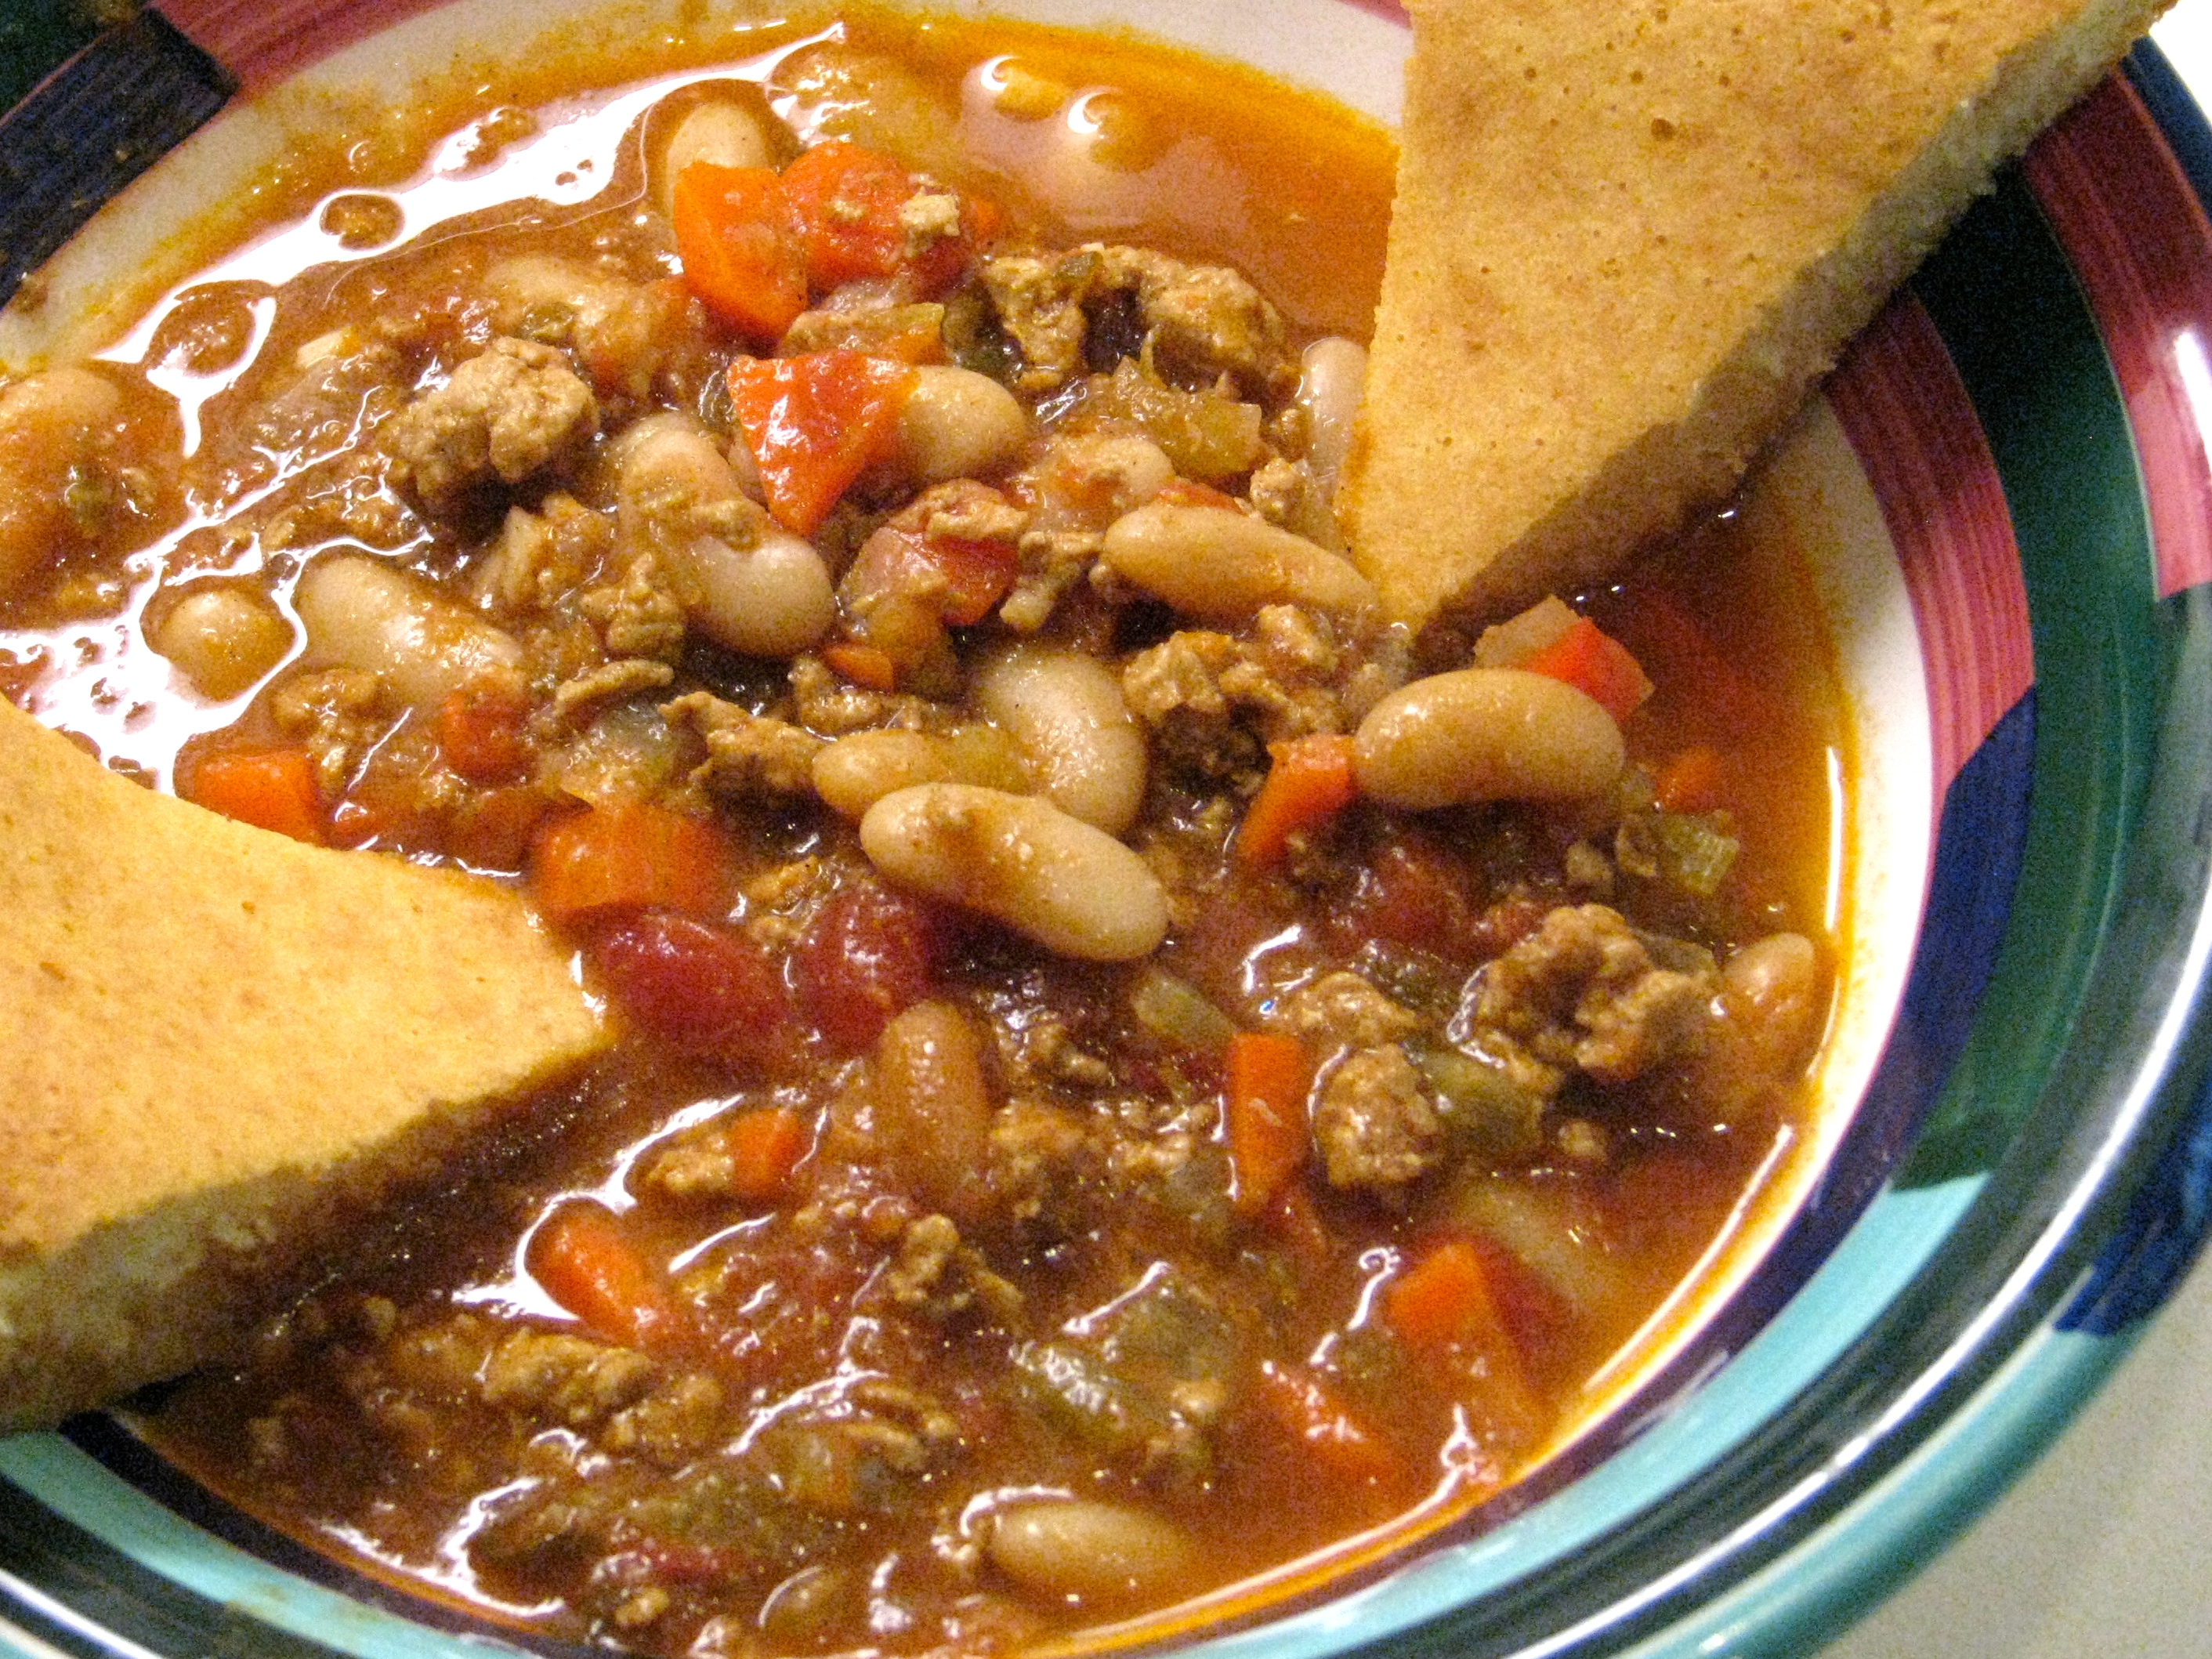 Chili with Skillet Cornbread